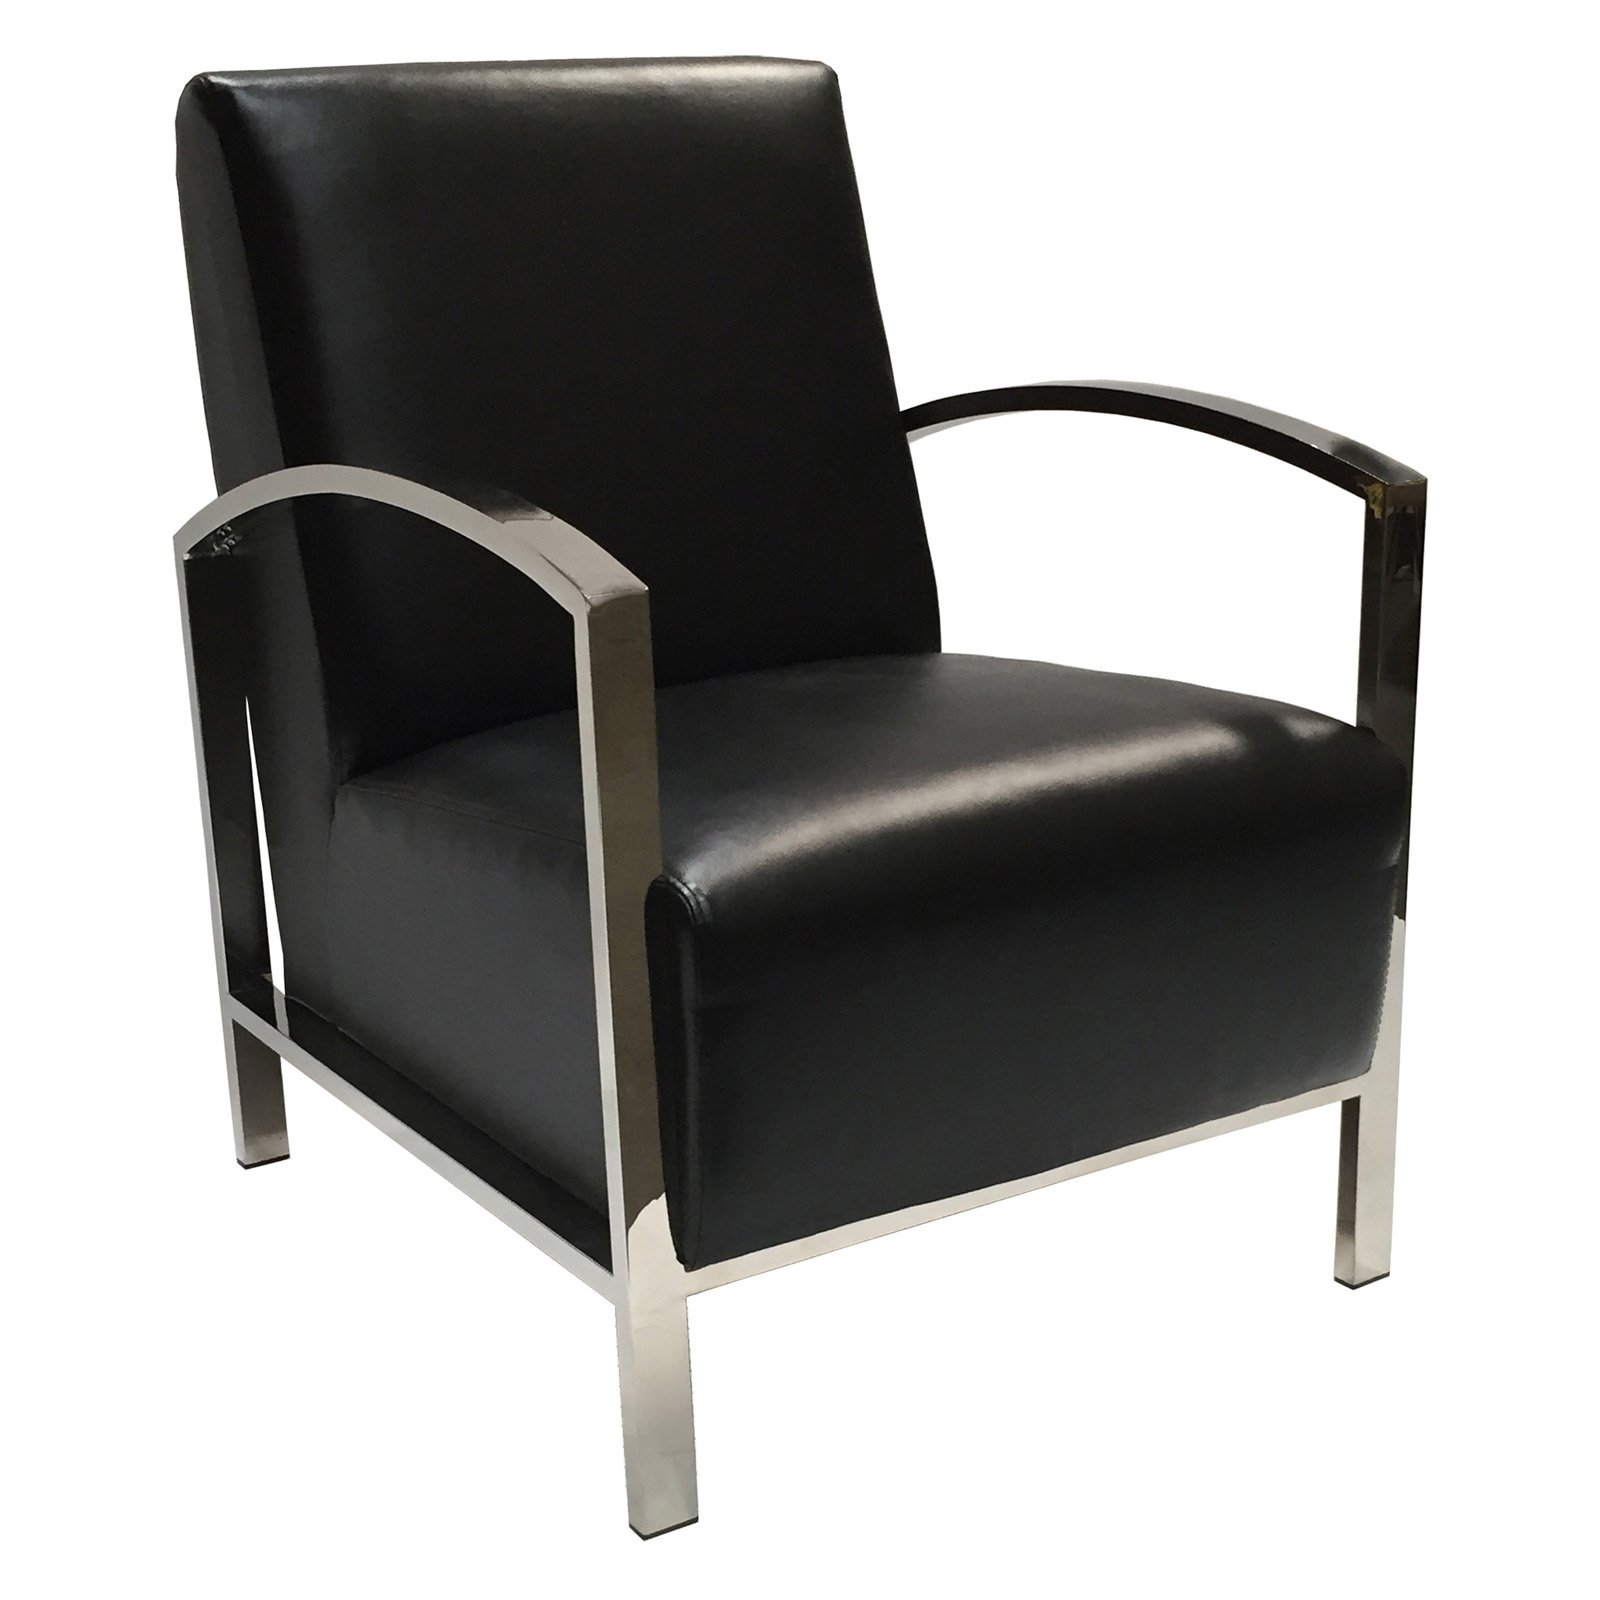 Allan Copley Designs Theresa Lounge Chair in Black